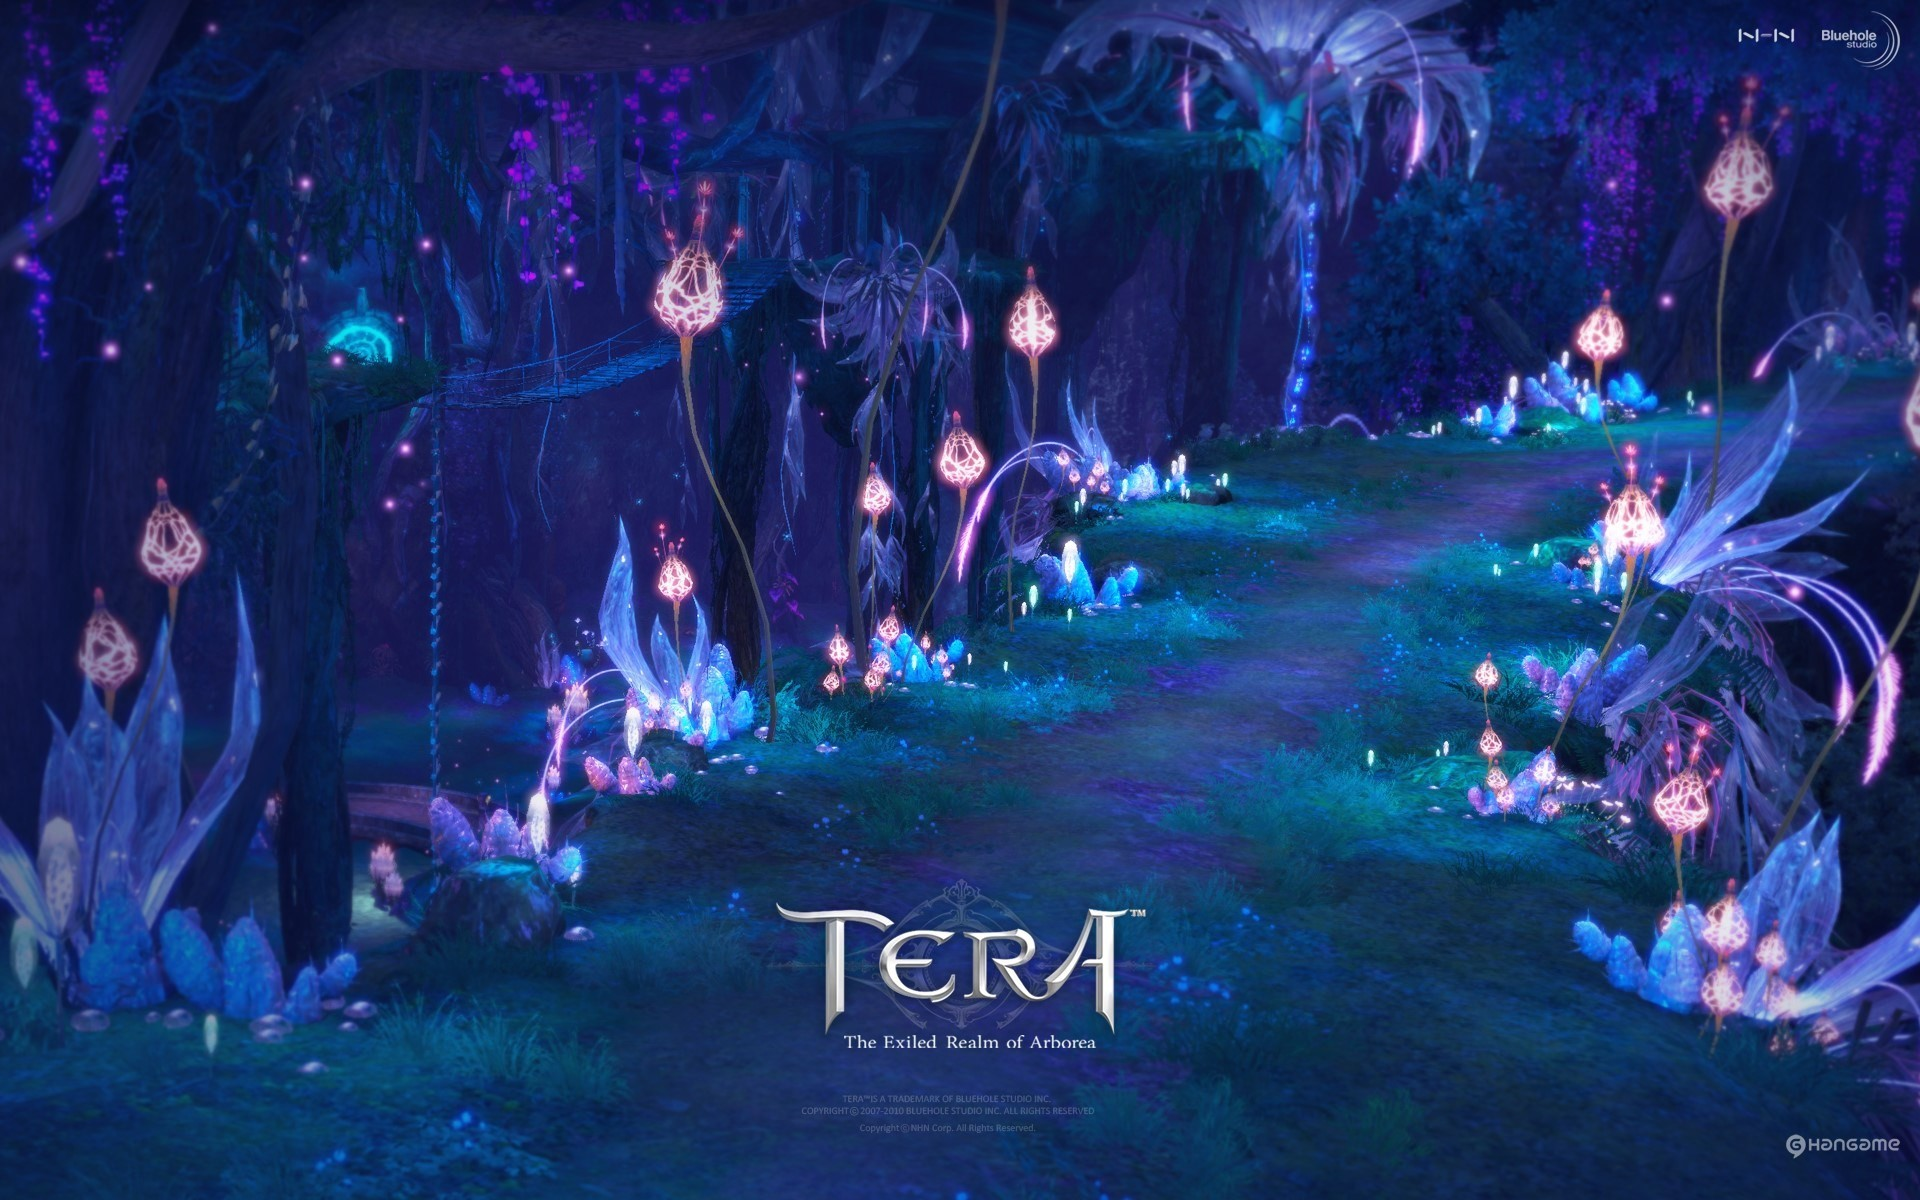 1920 x 1200px tera online wallpaper for desktop background by Haywood  Edwards